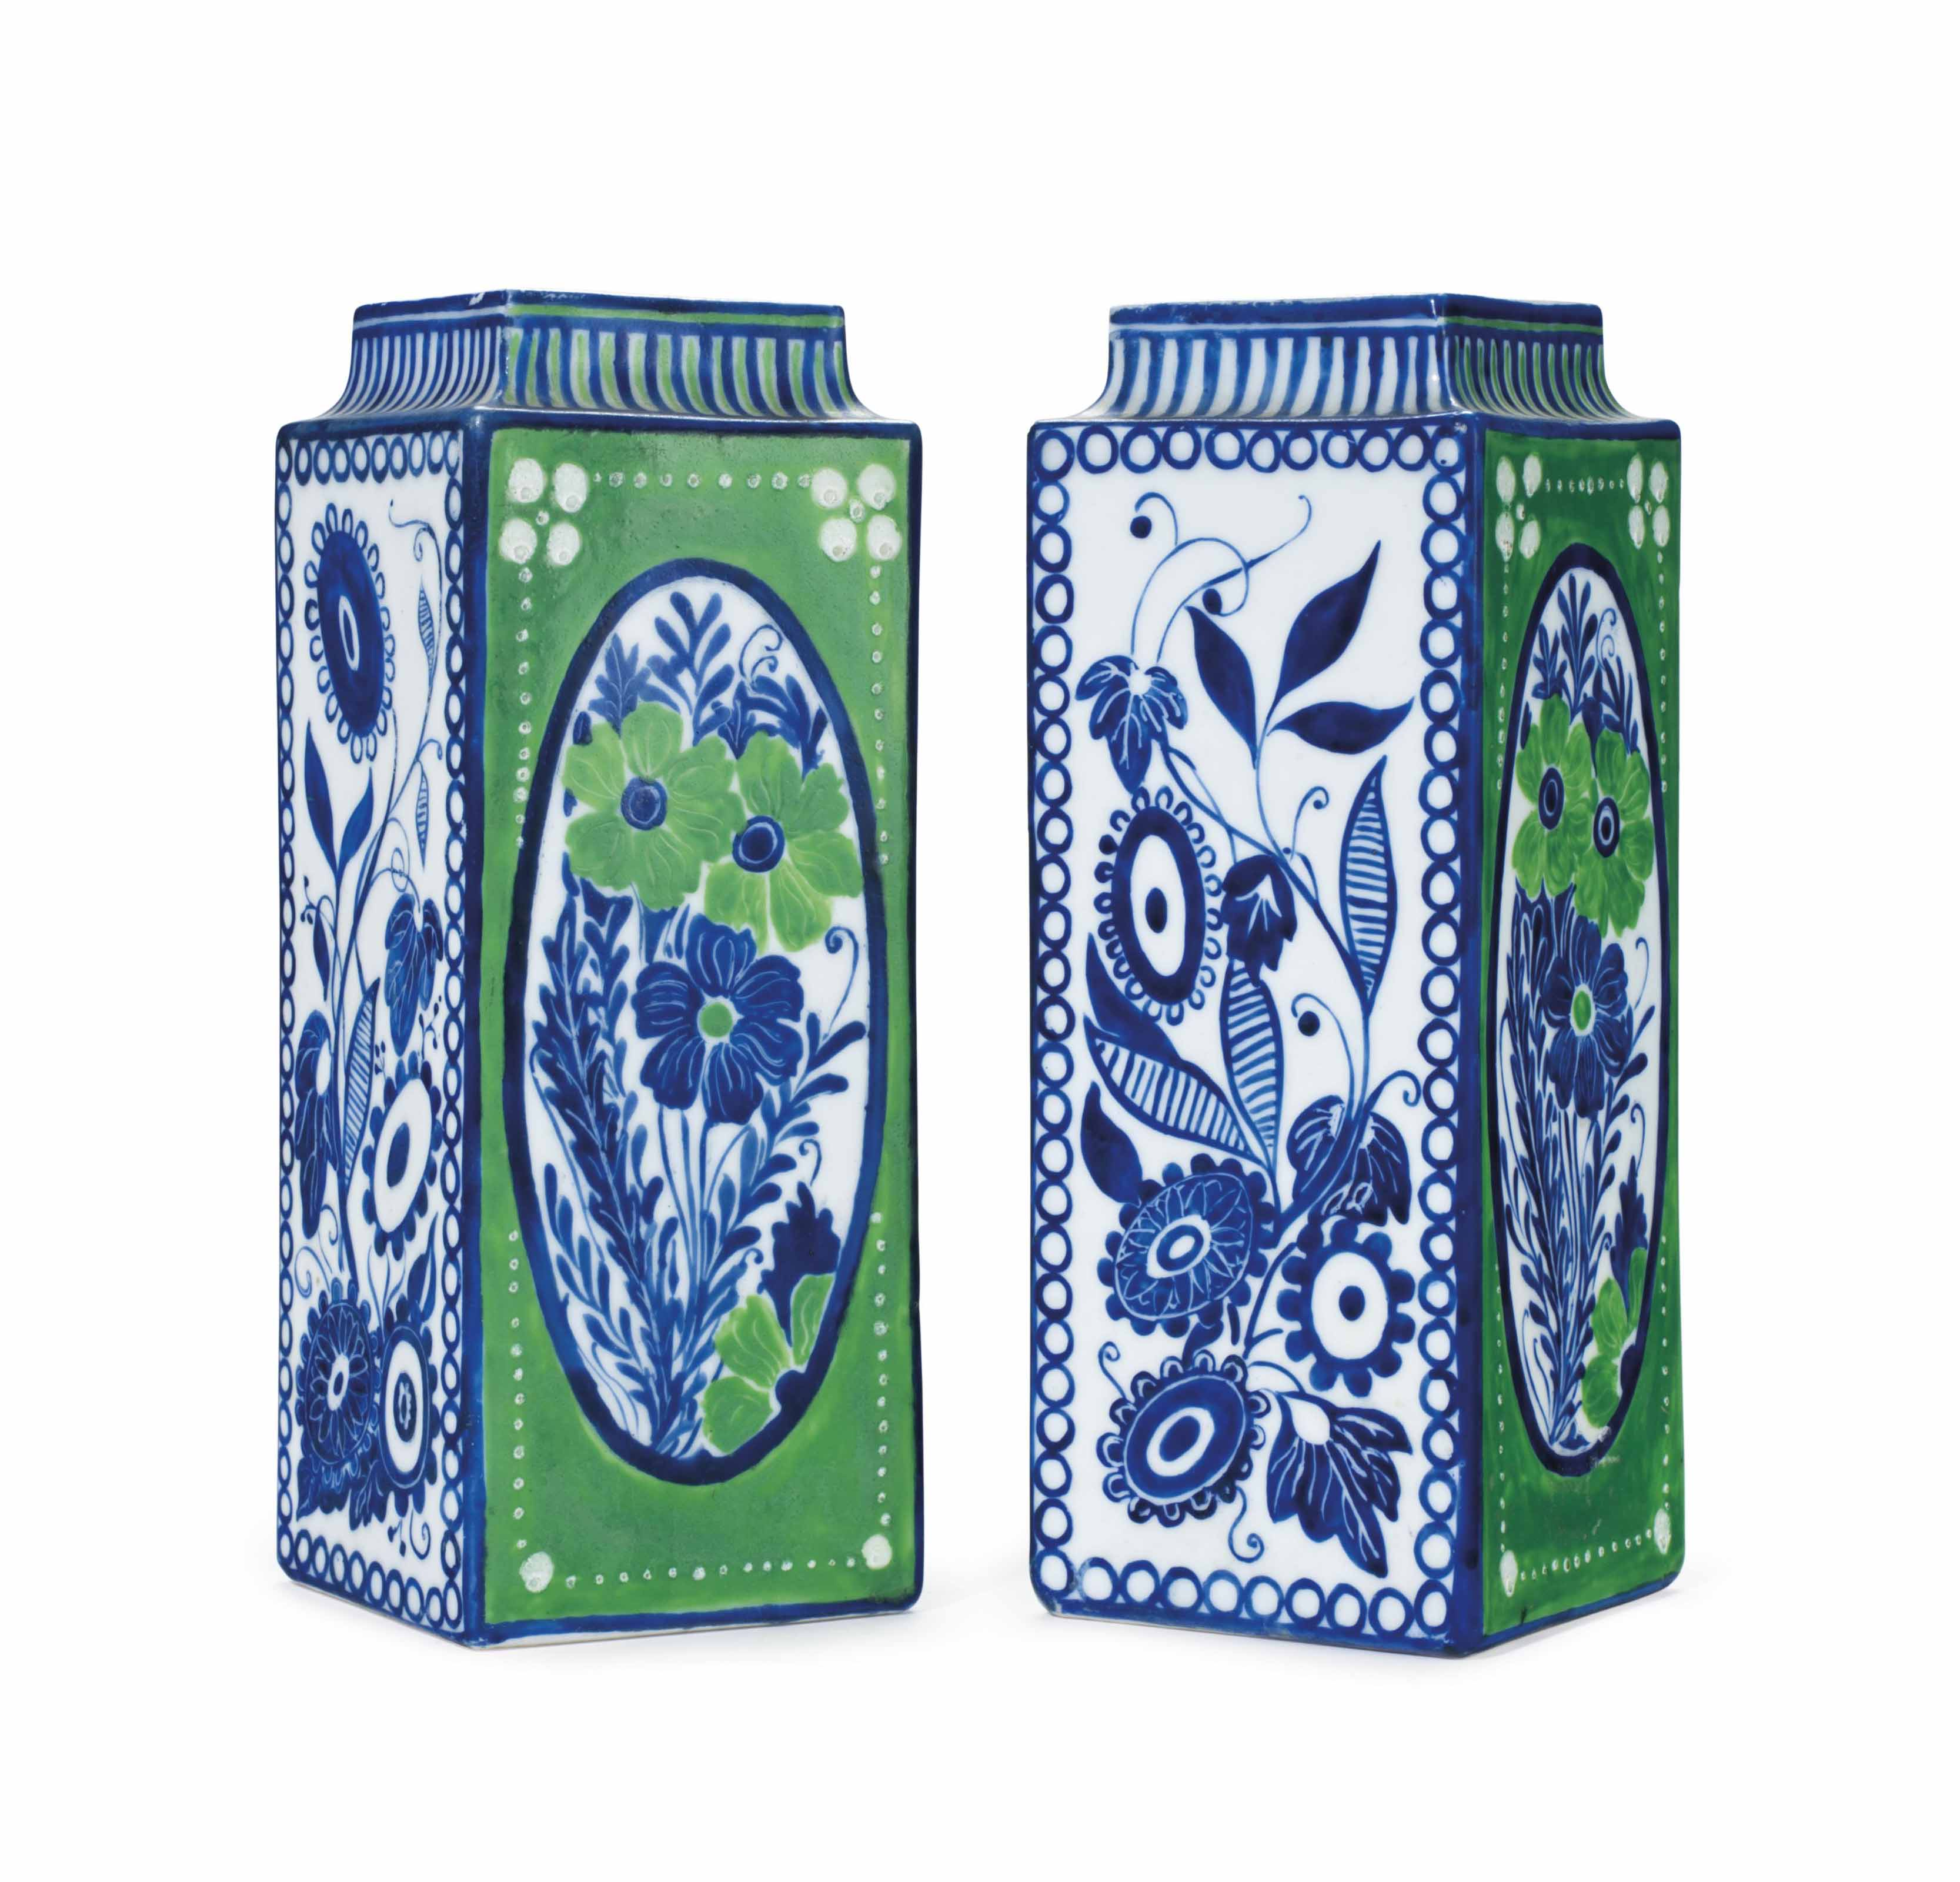 A PAIR OF FRENCH BLUE AND GREE